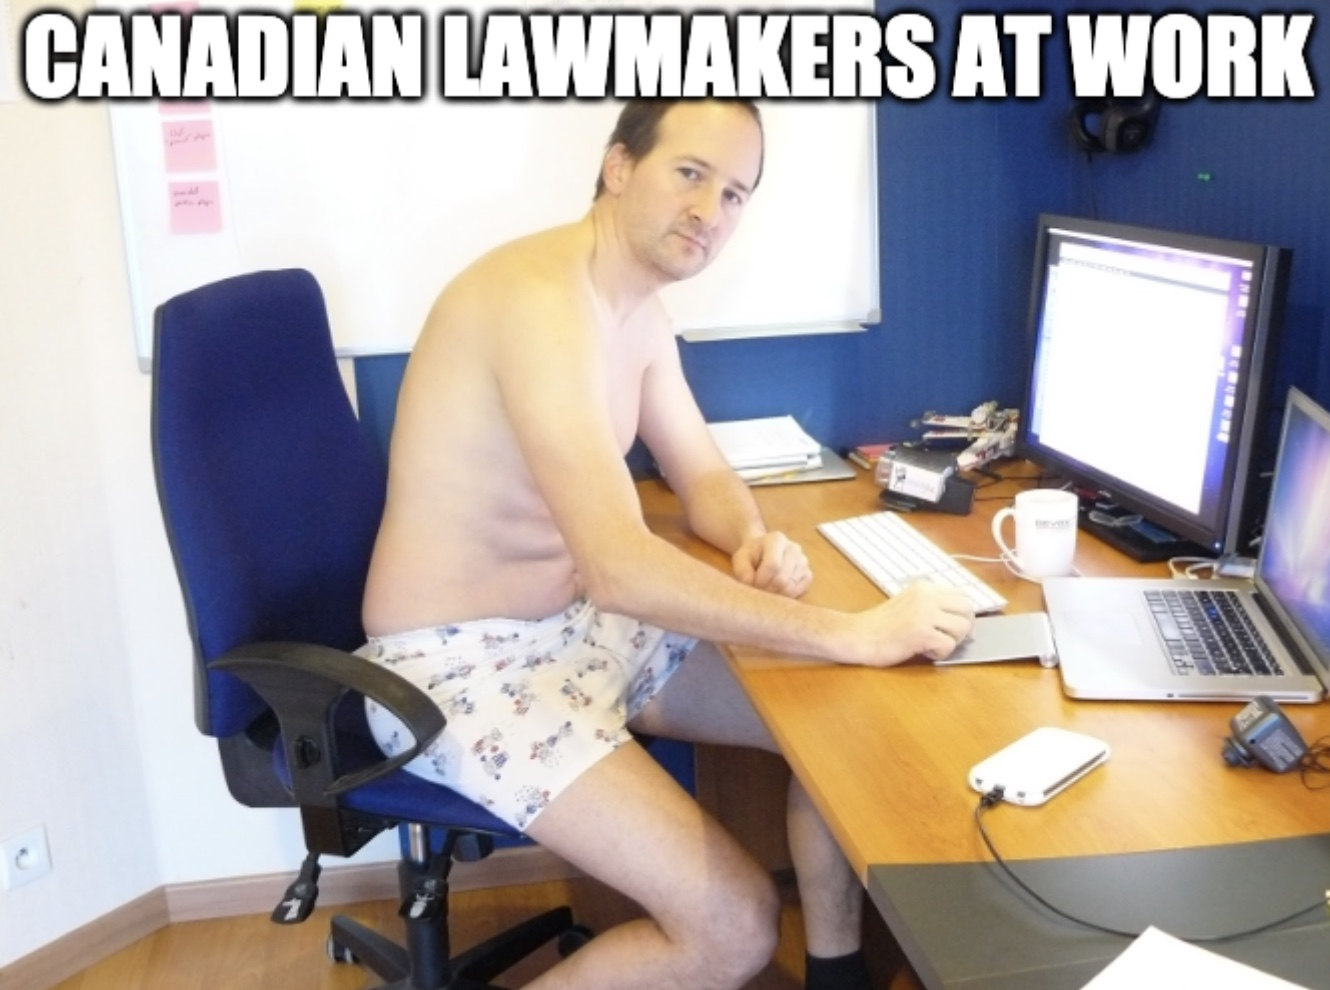 Canadian Law Maker Caught Urinating On Camera Meme